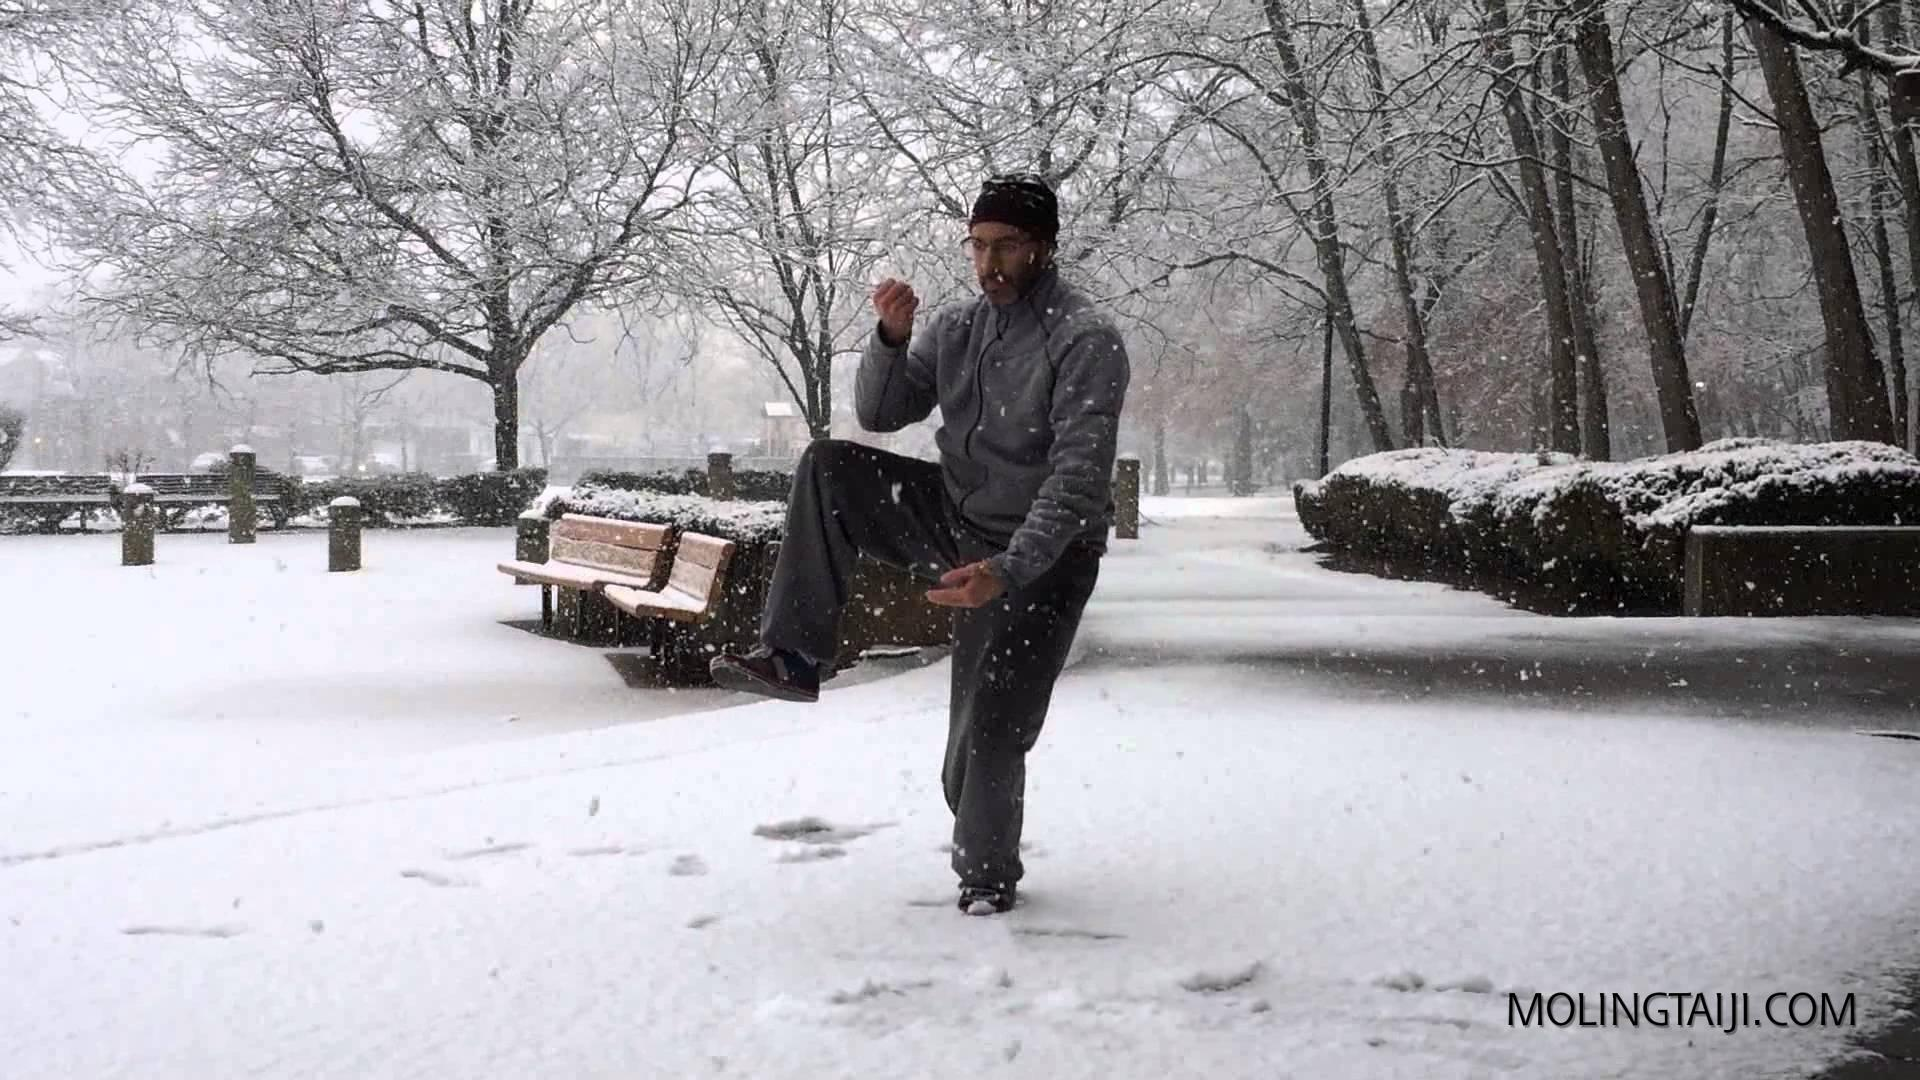 Chen Shi Taijiquan 5 moves on Ice & Snow; How to pull a groin in 5 easy moves..